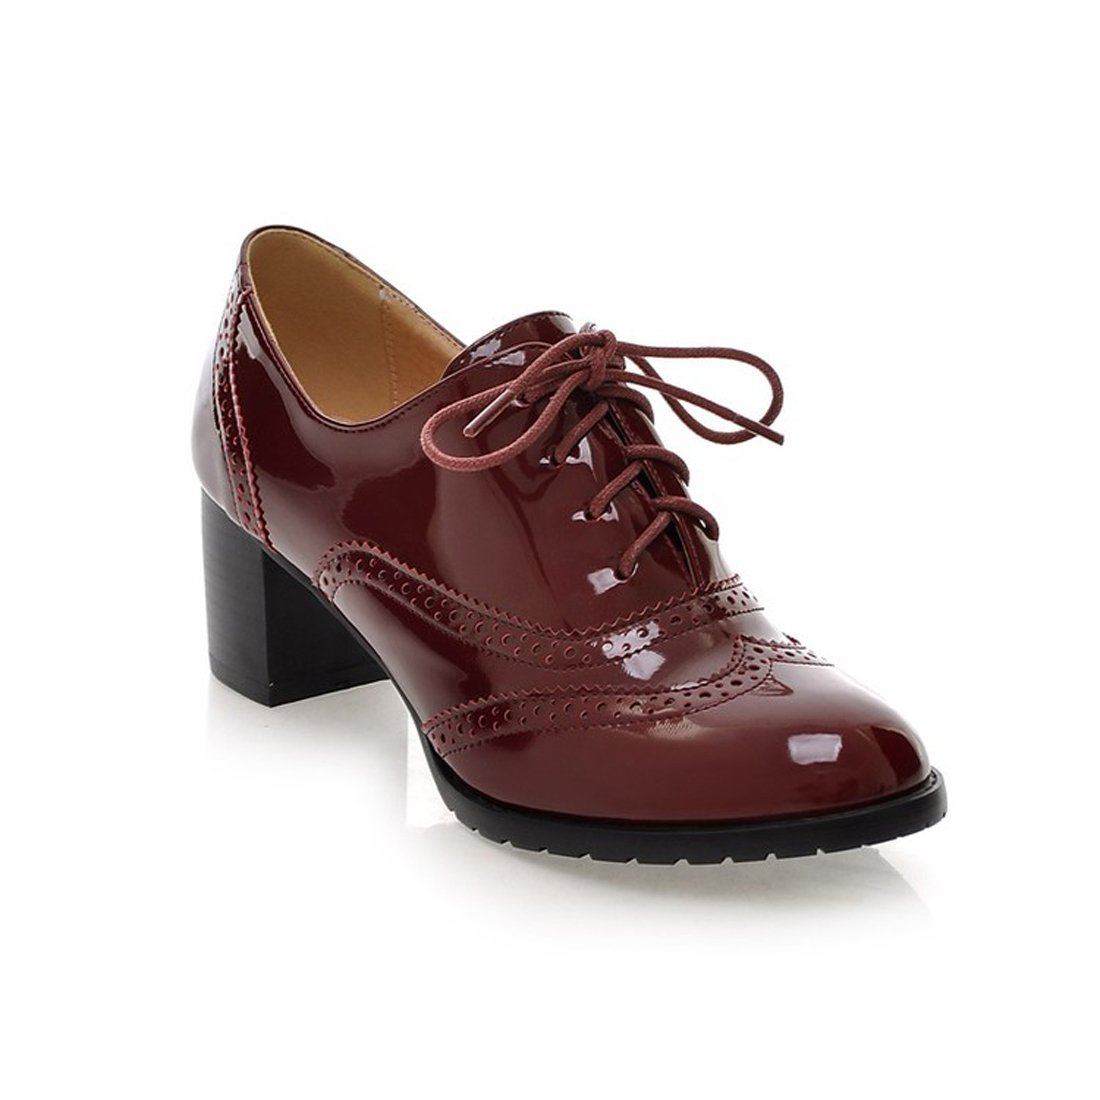 Mostrin Women's Lace up Wingtip Oxford Shoes Classic Fashion Patent Leather Chunky Heel Bootie